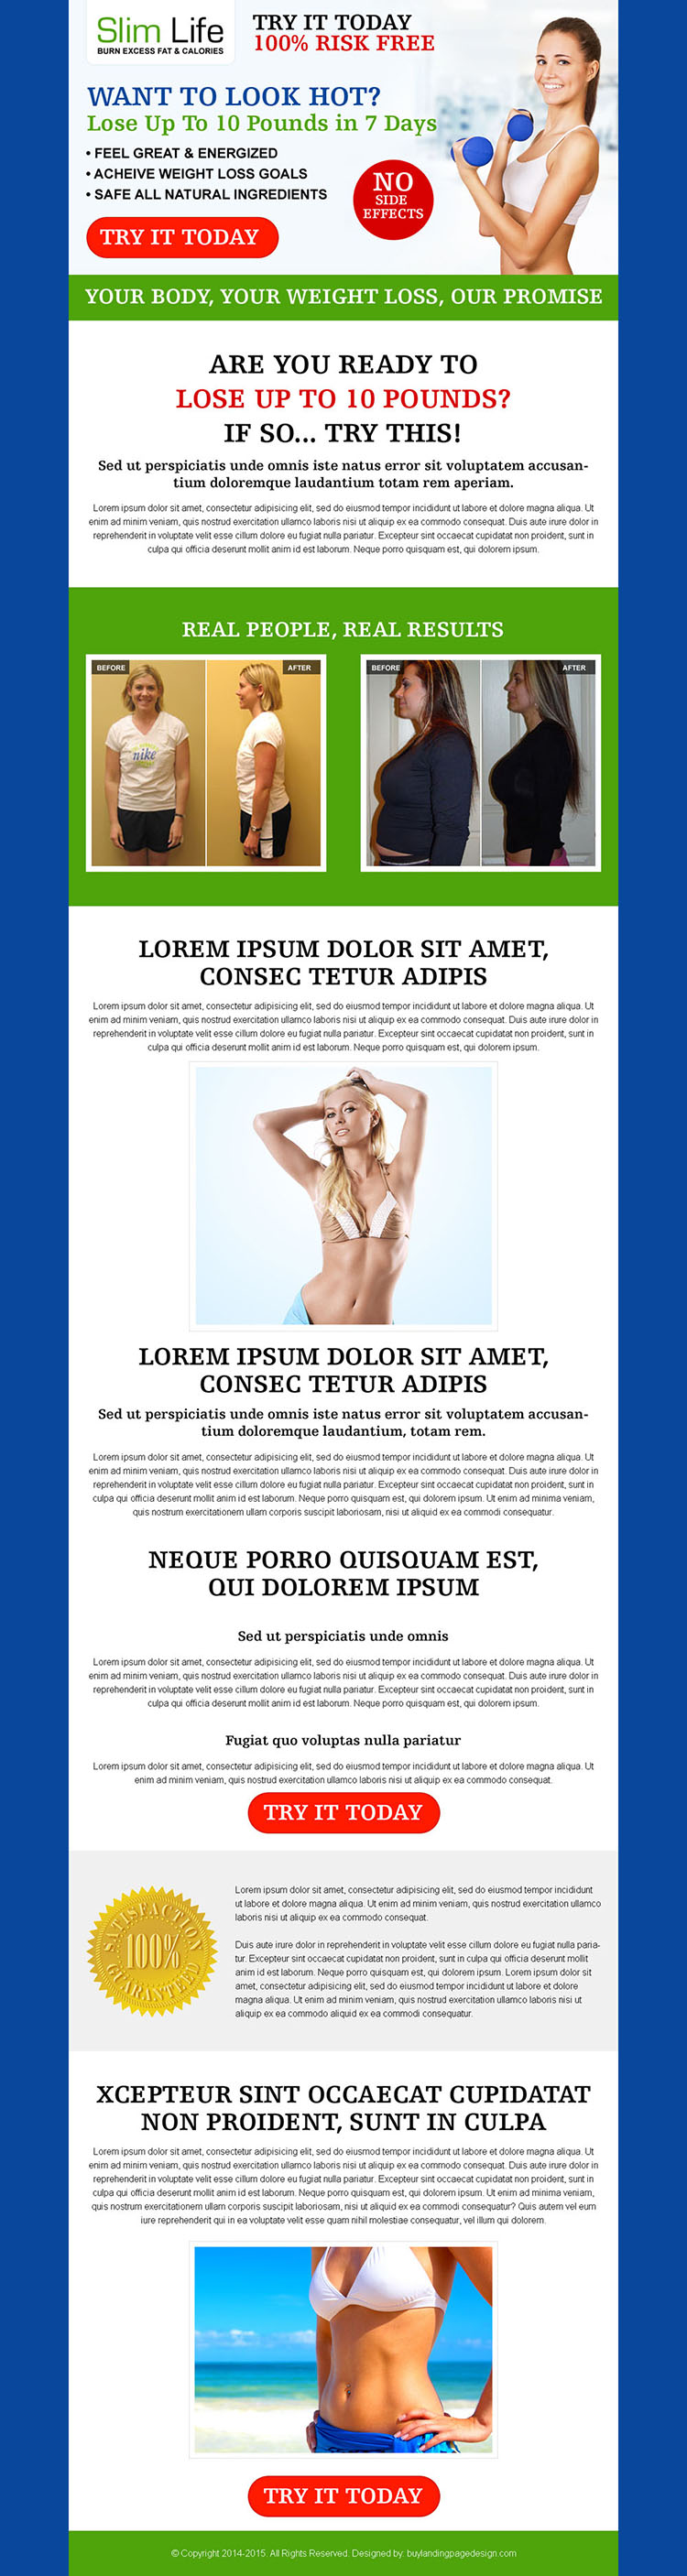 weight loss product long call to action most converting sales page design